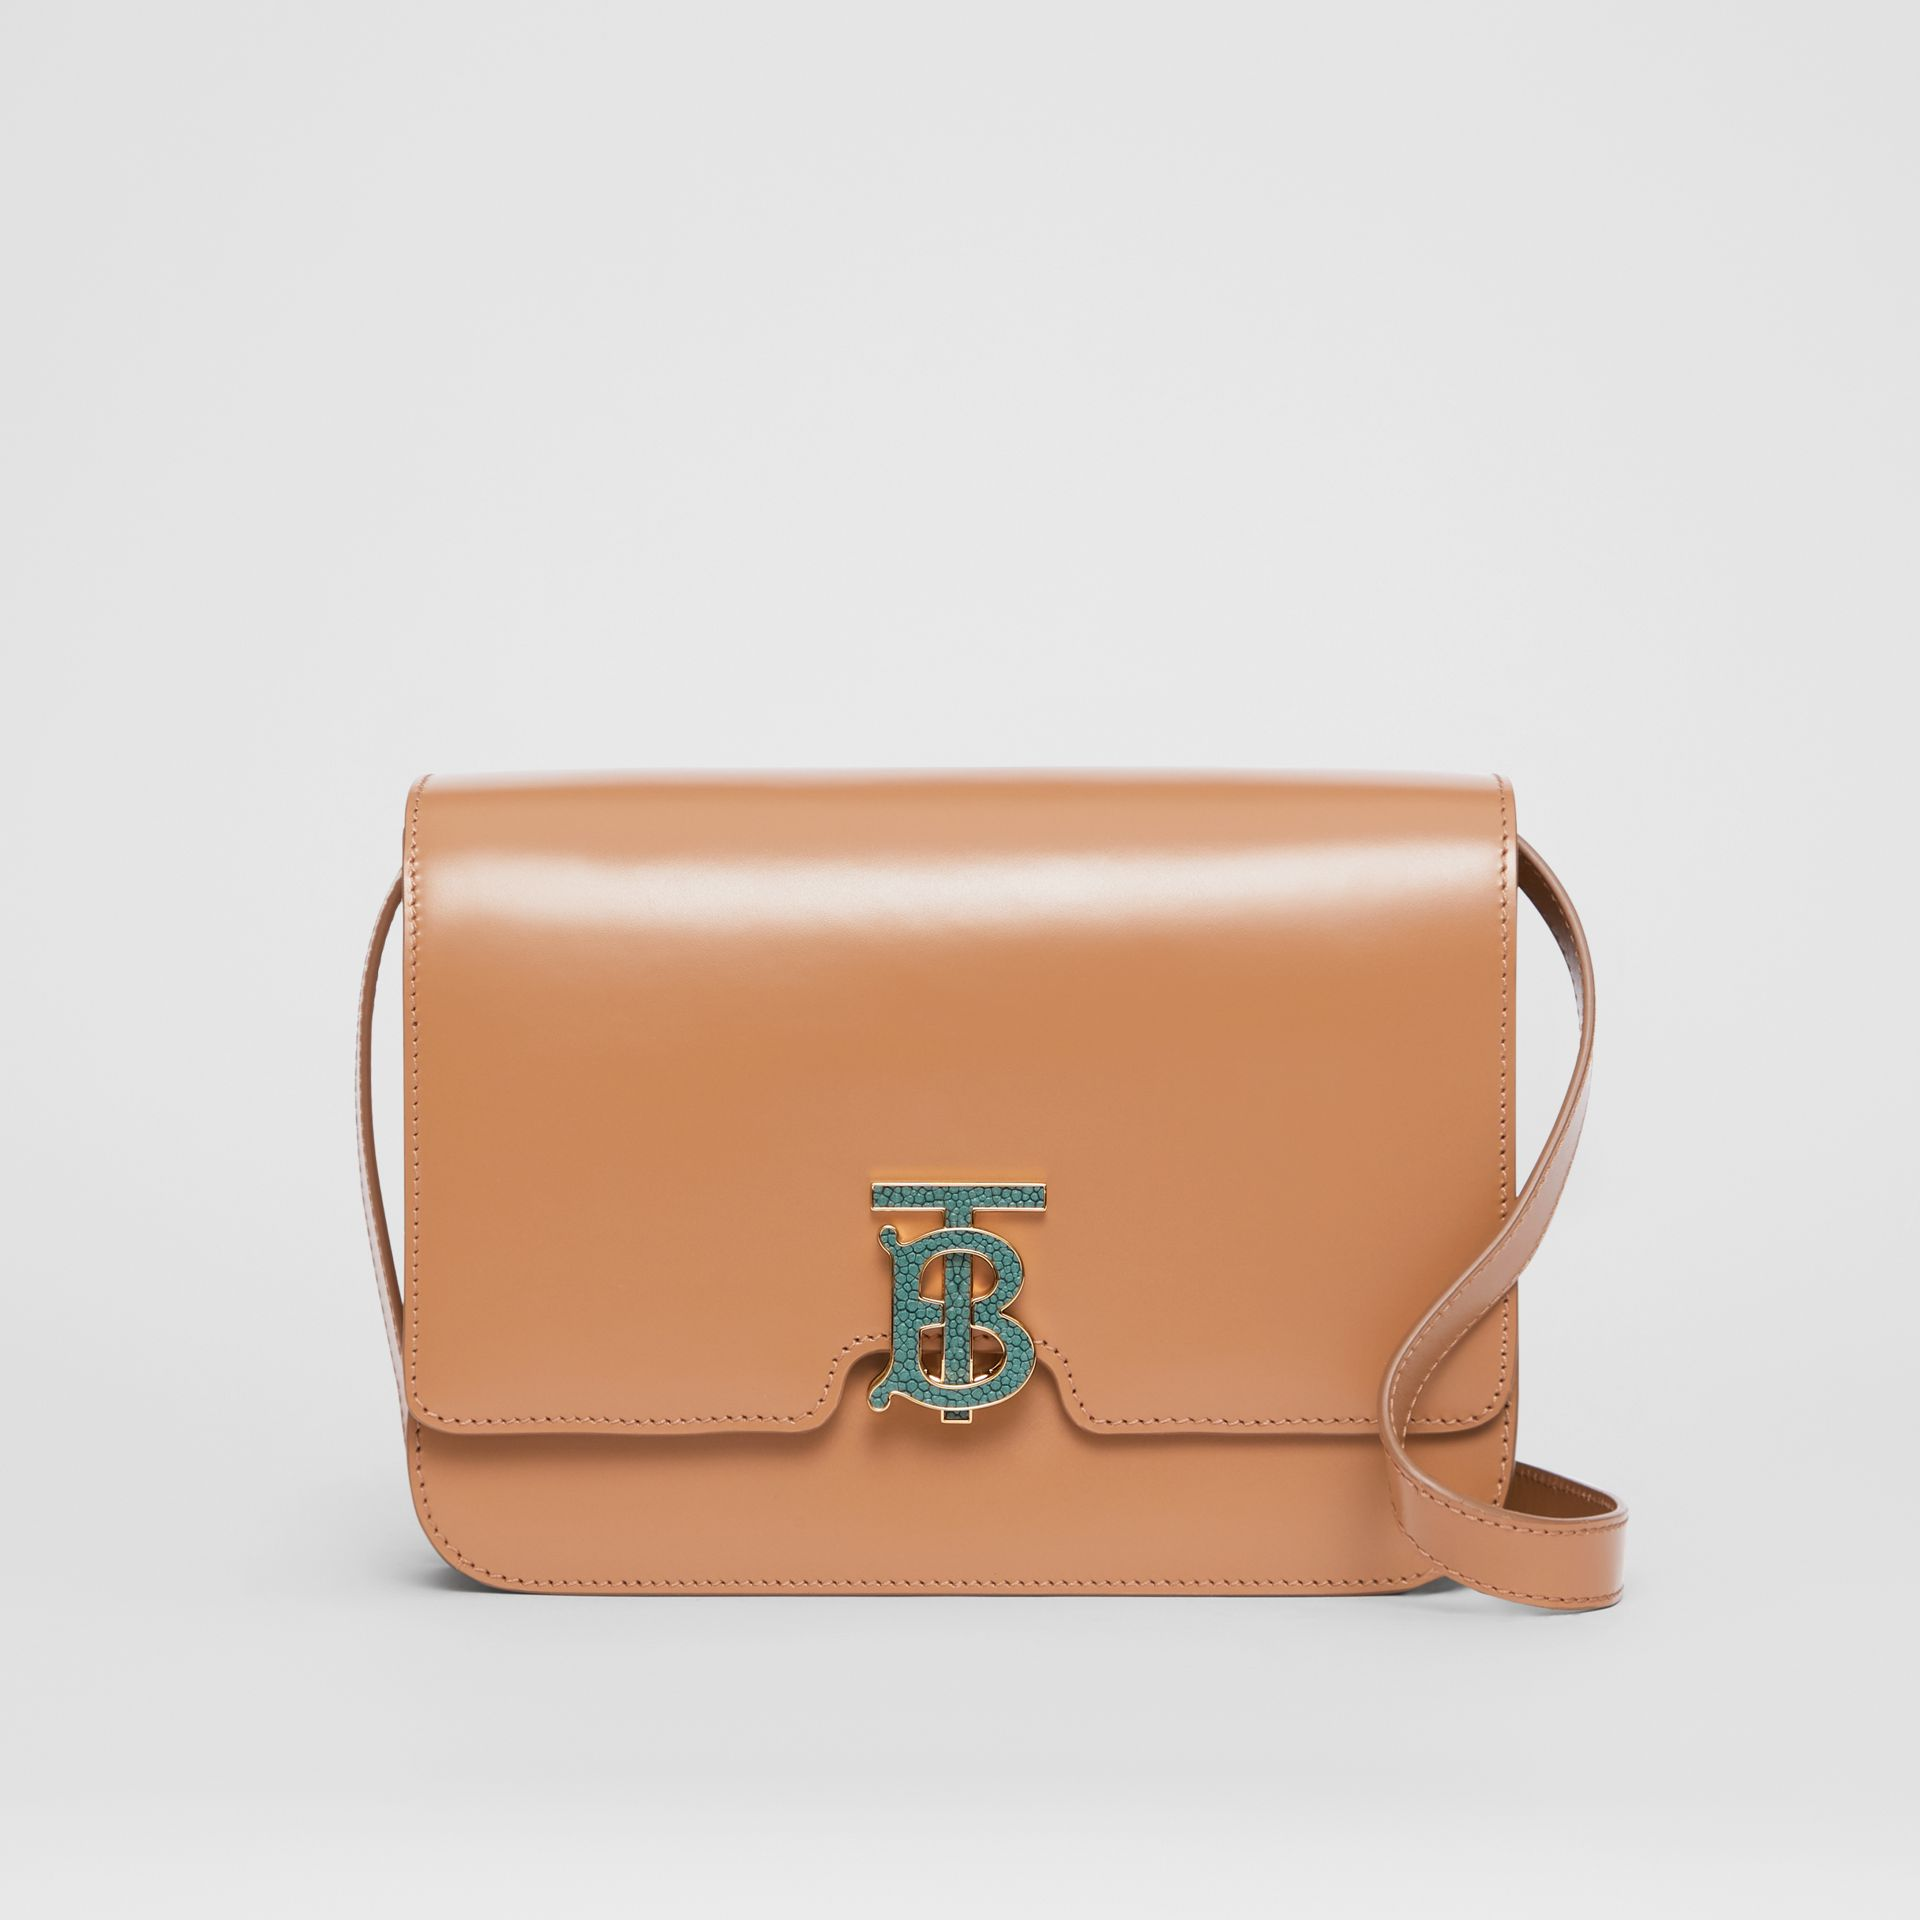 Medium Leather TB Bag in Flaxseed - Women | Burberry United States - gallery image 0